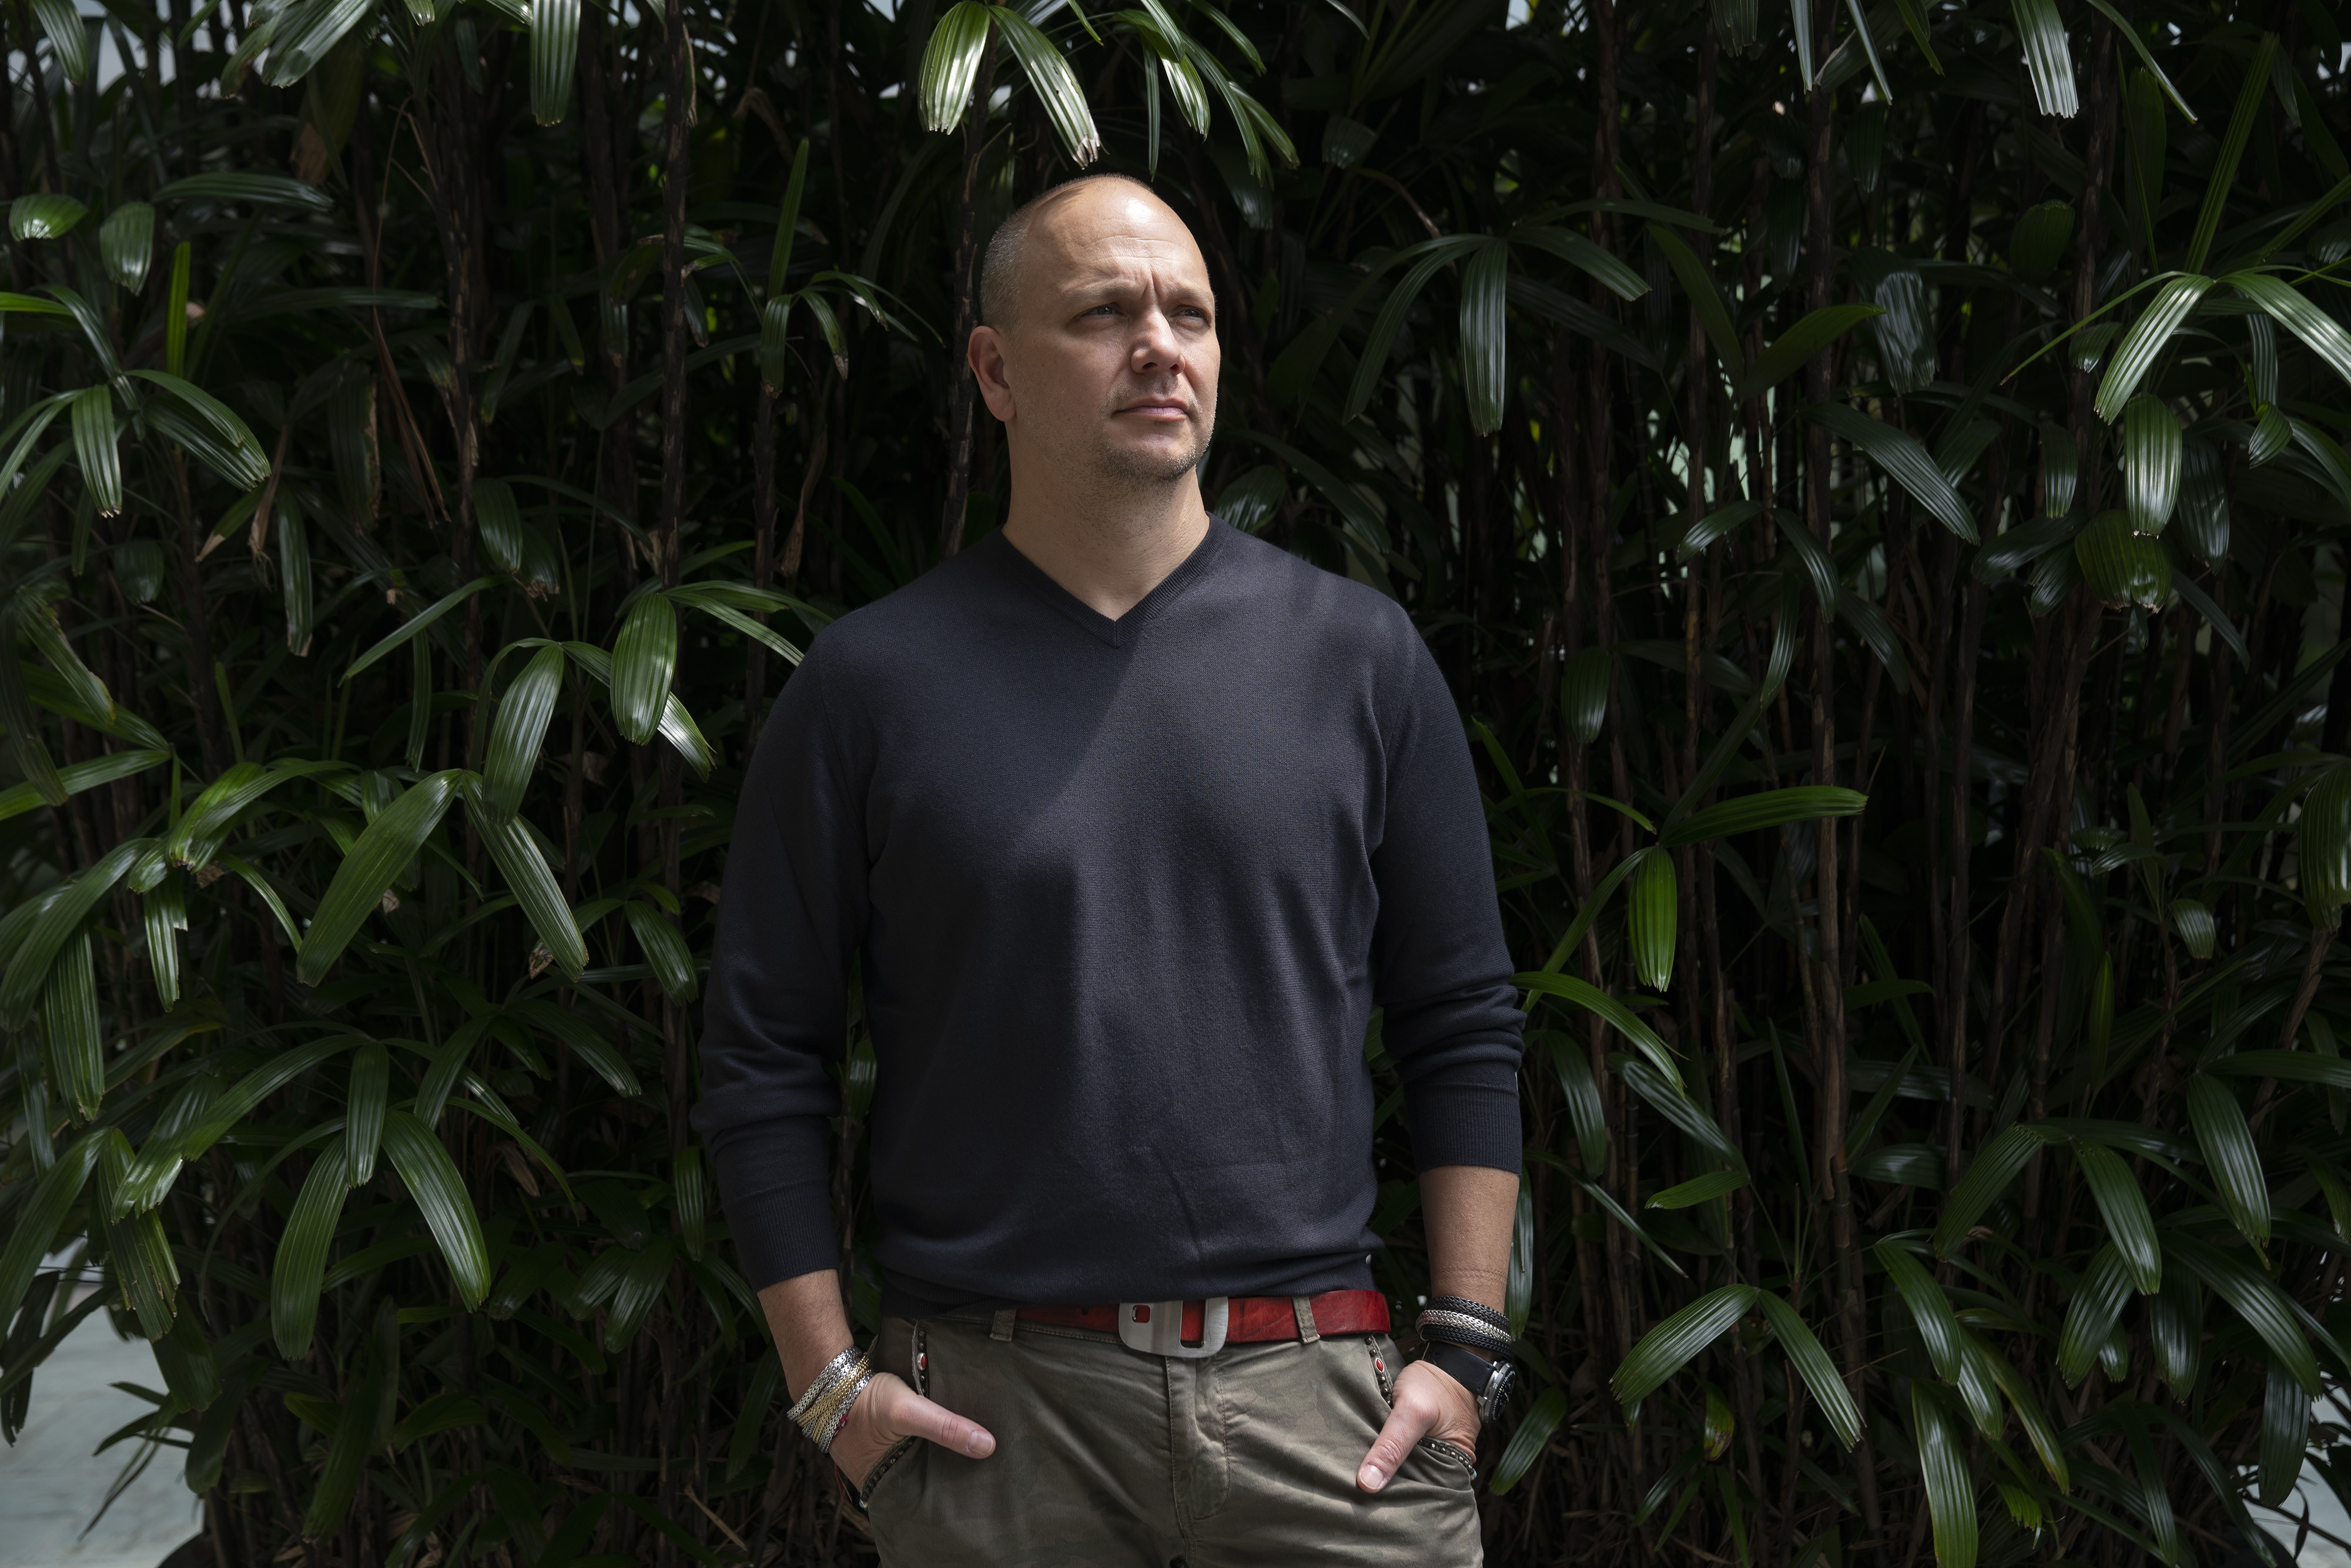 ab26100b9171 iPhone co-creator Tony Fadell on plant-based burgers, batteries and China  start-ups